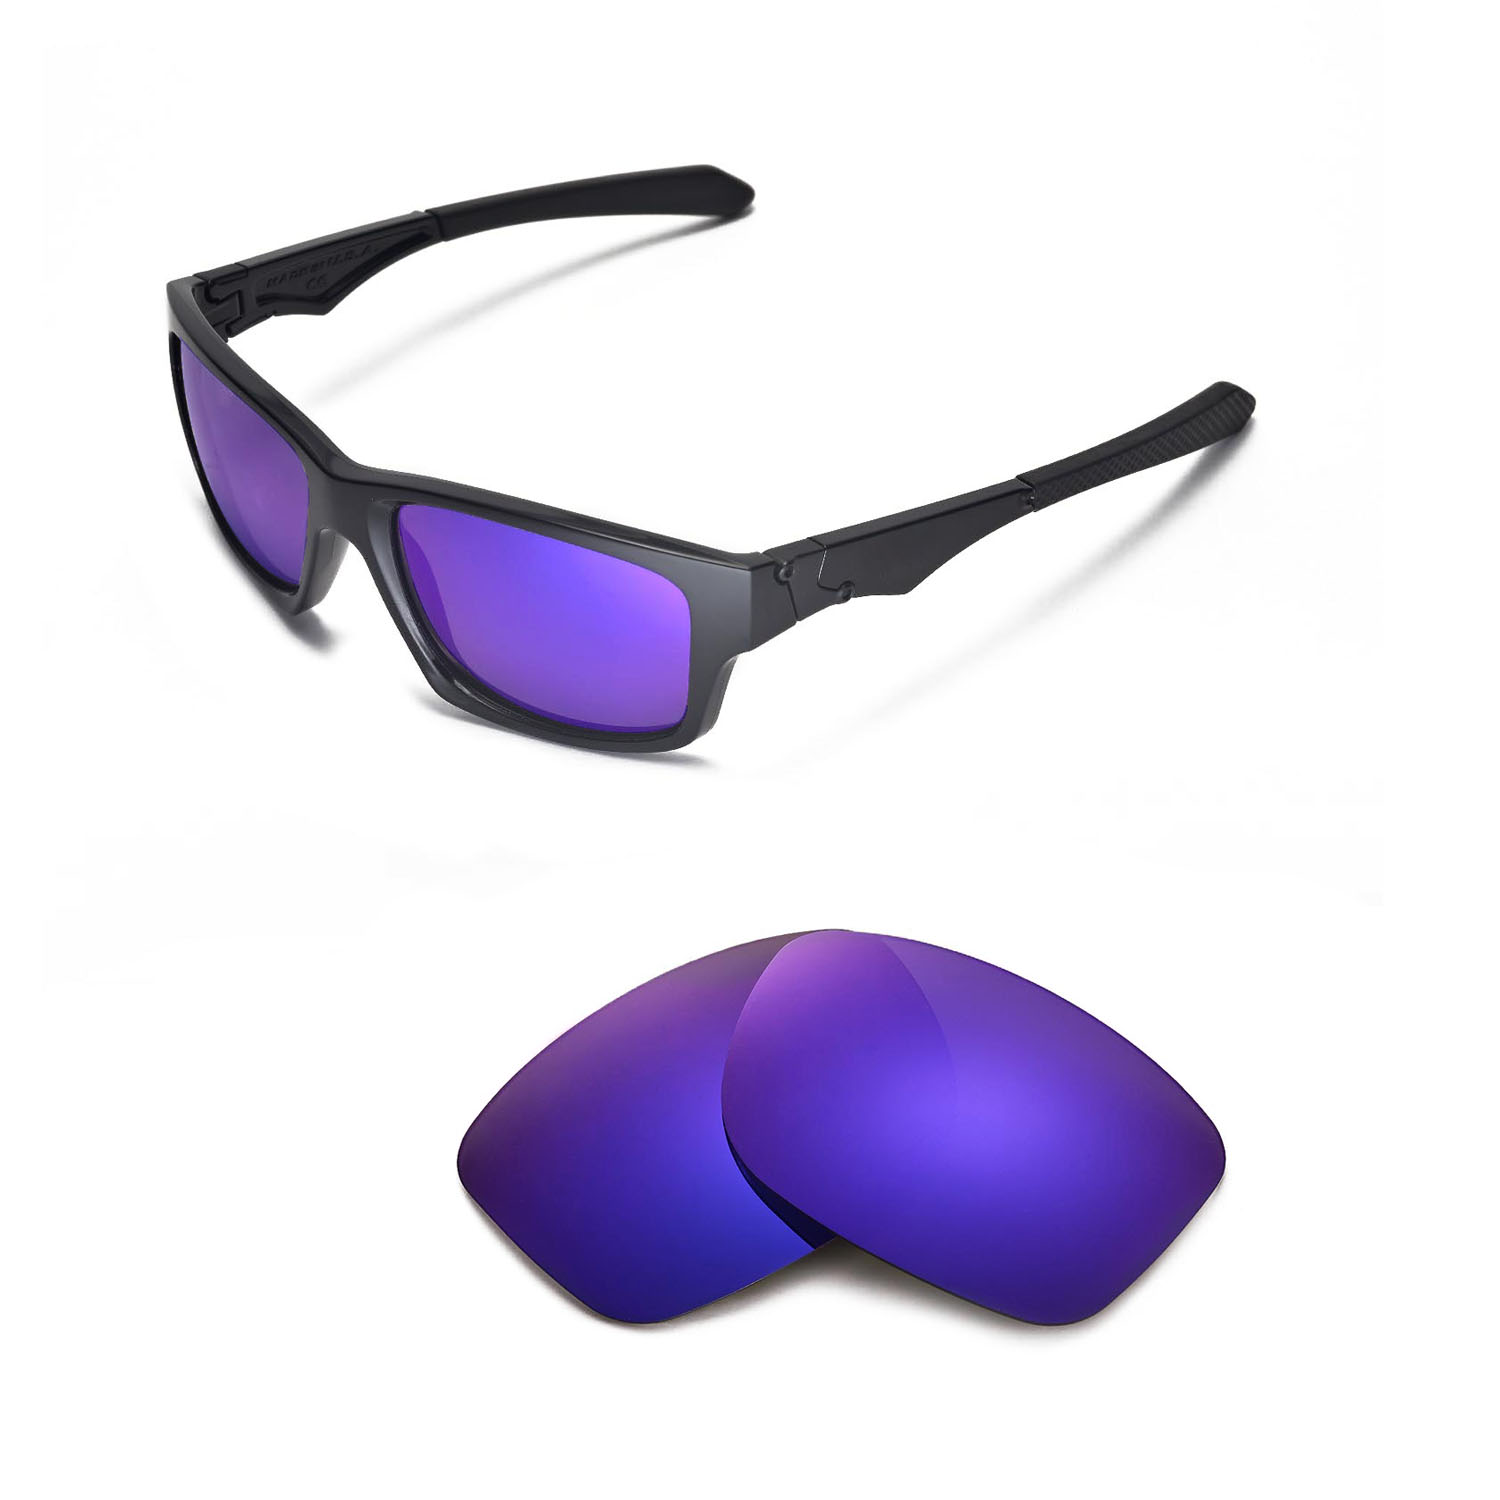 b51ba9cb62 ... norway walleva polarized purple lenses for oakley jupiter squared x1  walleva microfiber lens cleaning cloth x1